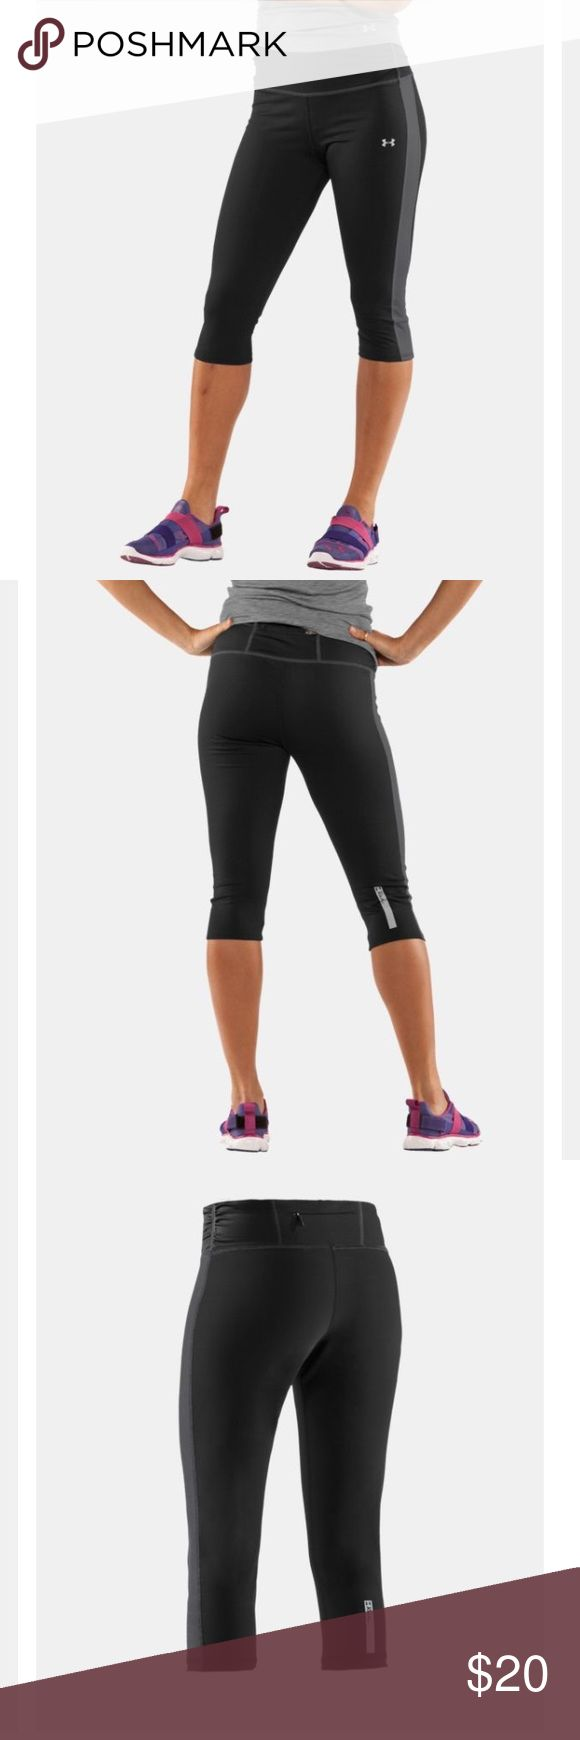 """Under Armour 16"""" Escape Capri Next-to-skin without the squeeze. Mid-weight AllSeasonGear® fabric delivers optimal comfort between the extremes Lightweight, 4-way stretch construction improves mobility and accelerates dry time Superior Moisture Transport System wicks away sweat so you stay dry and focused Wide waistband with feminine ruching detail offers an updated style and a smoother, more flattering fit 360° reflectivity enhances visibility  Rear zippered pocket  16"""" inseam hits just…"""